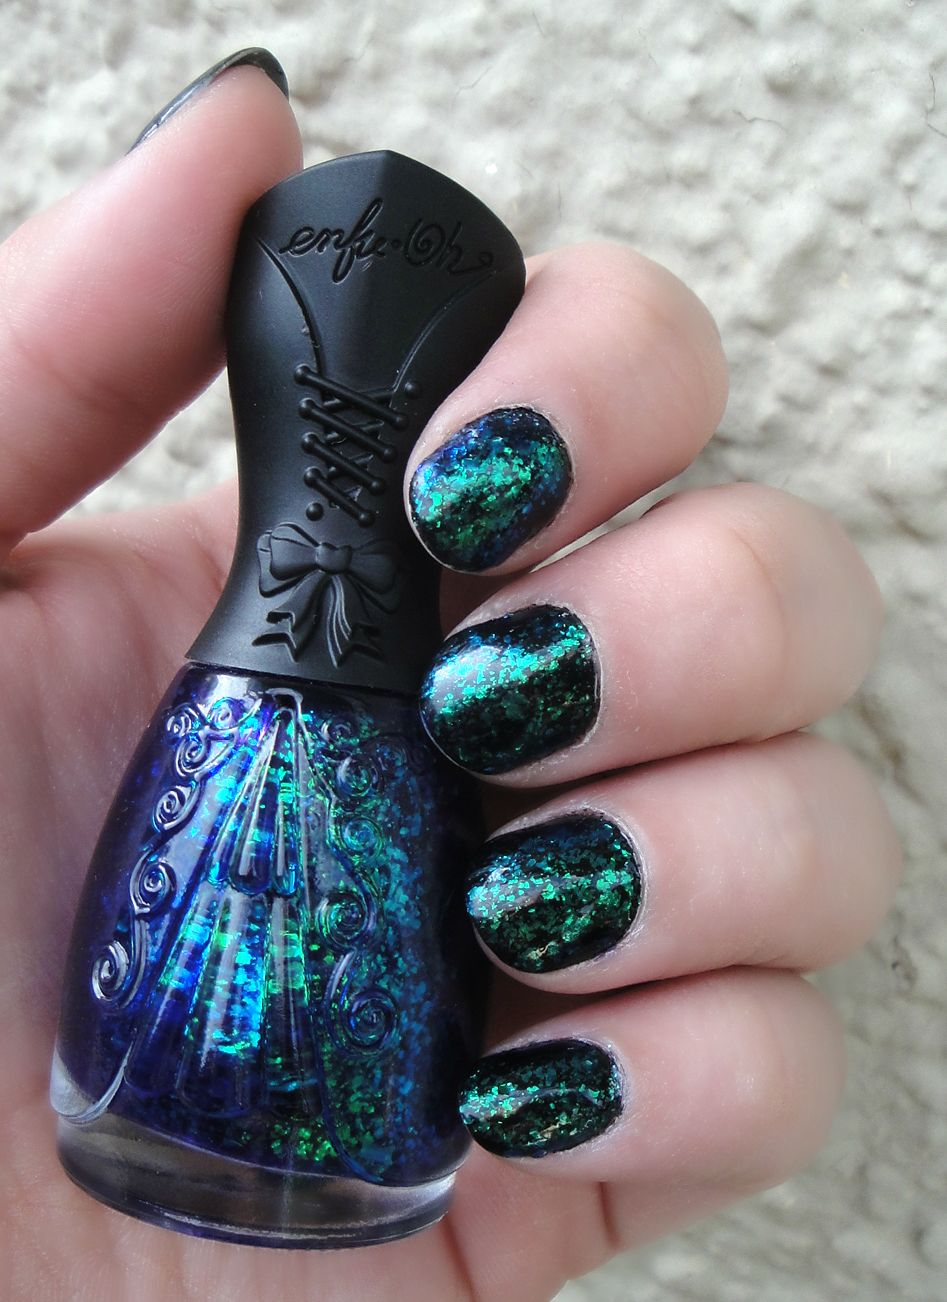 Nfu oh! blue and green flake polish. This is the prettiest nail ...